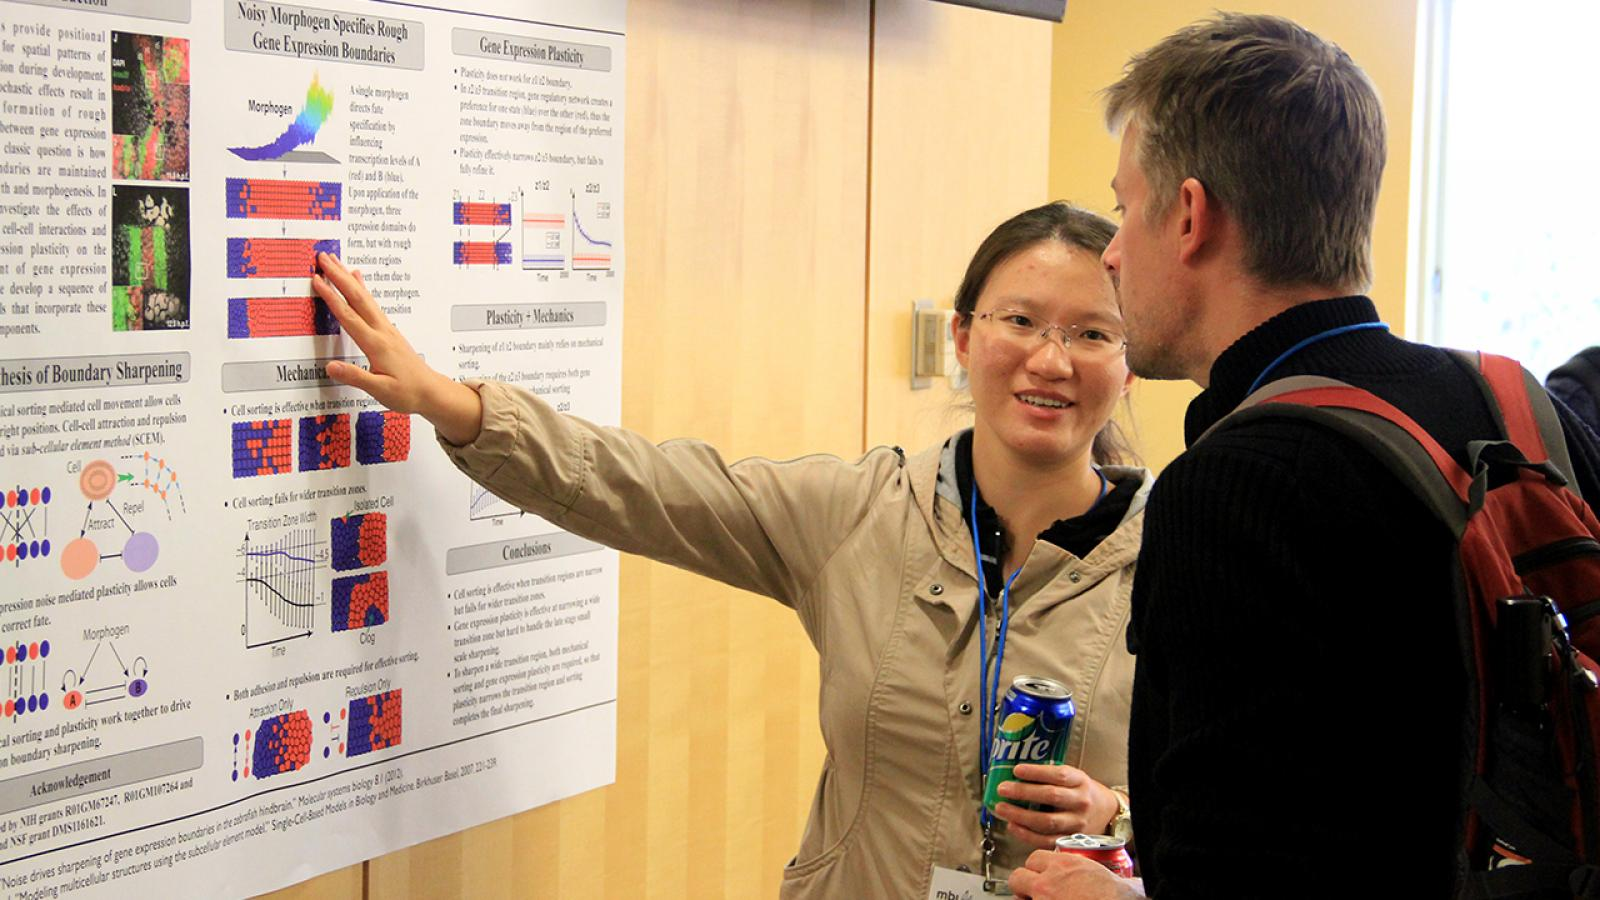 Photo of researcher explaining her poster